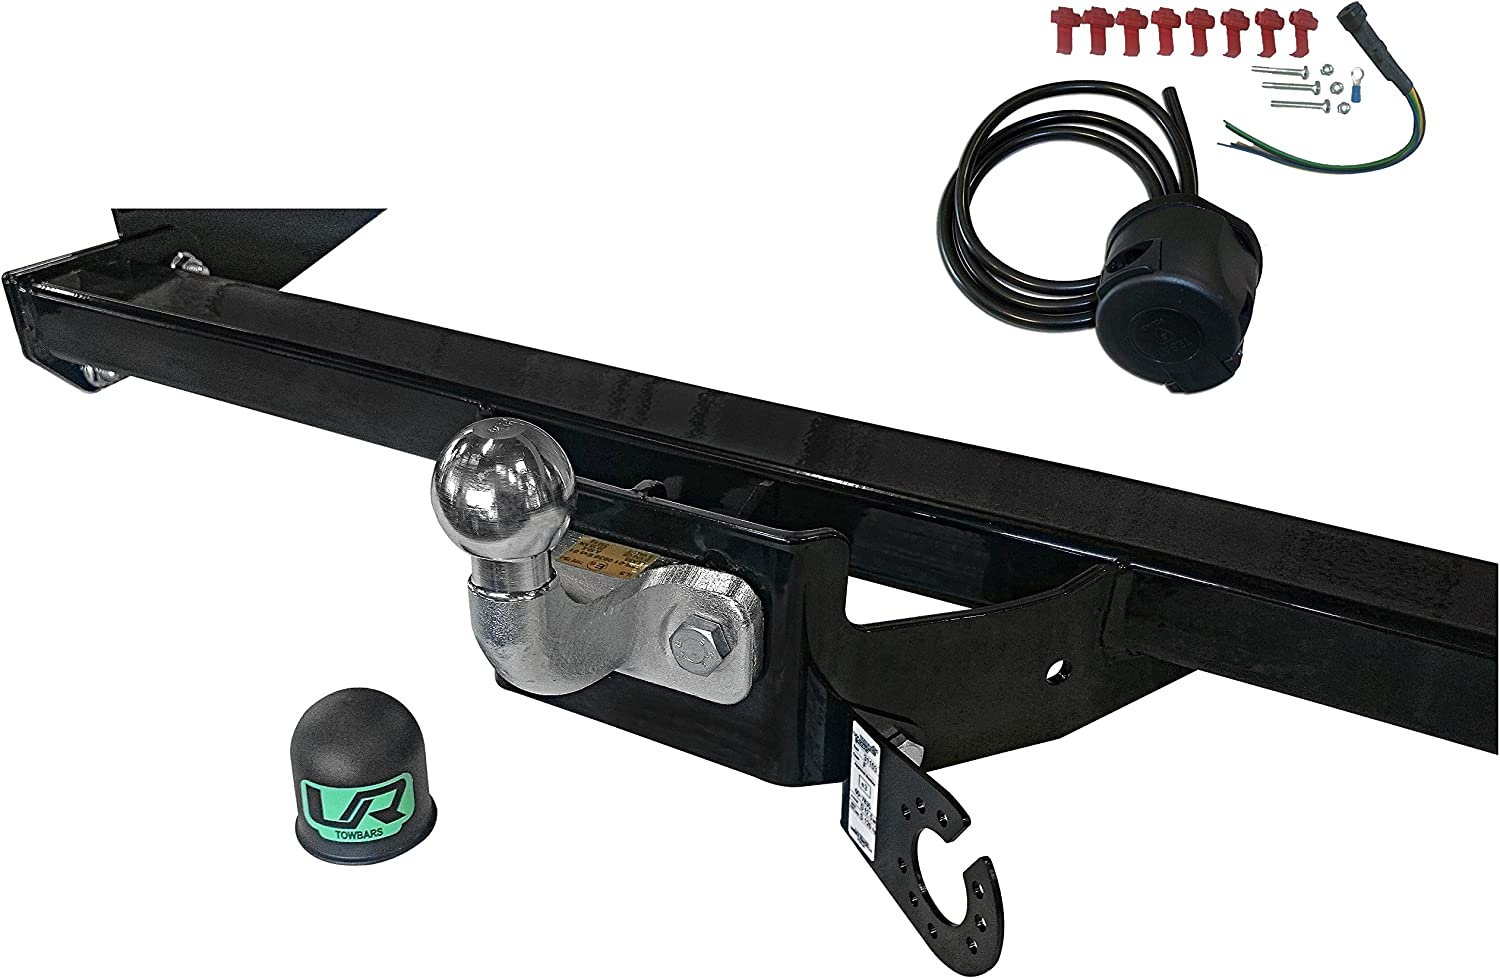 Umbra Rimorchi Flange Towbar with 7 pin Electrics for Renault Master II VAN 2003 to 2010 UT311COR01ZSFM//WU200UK9